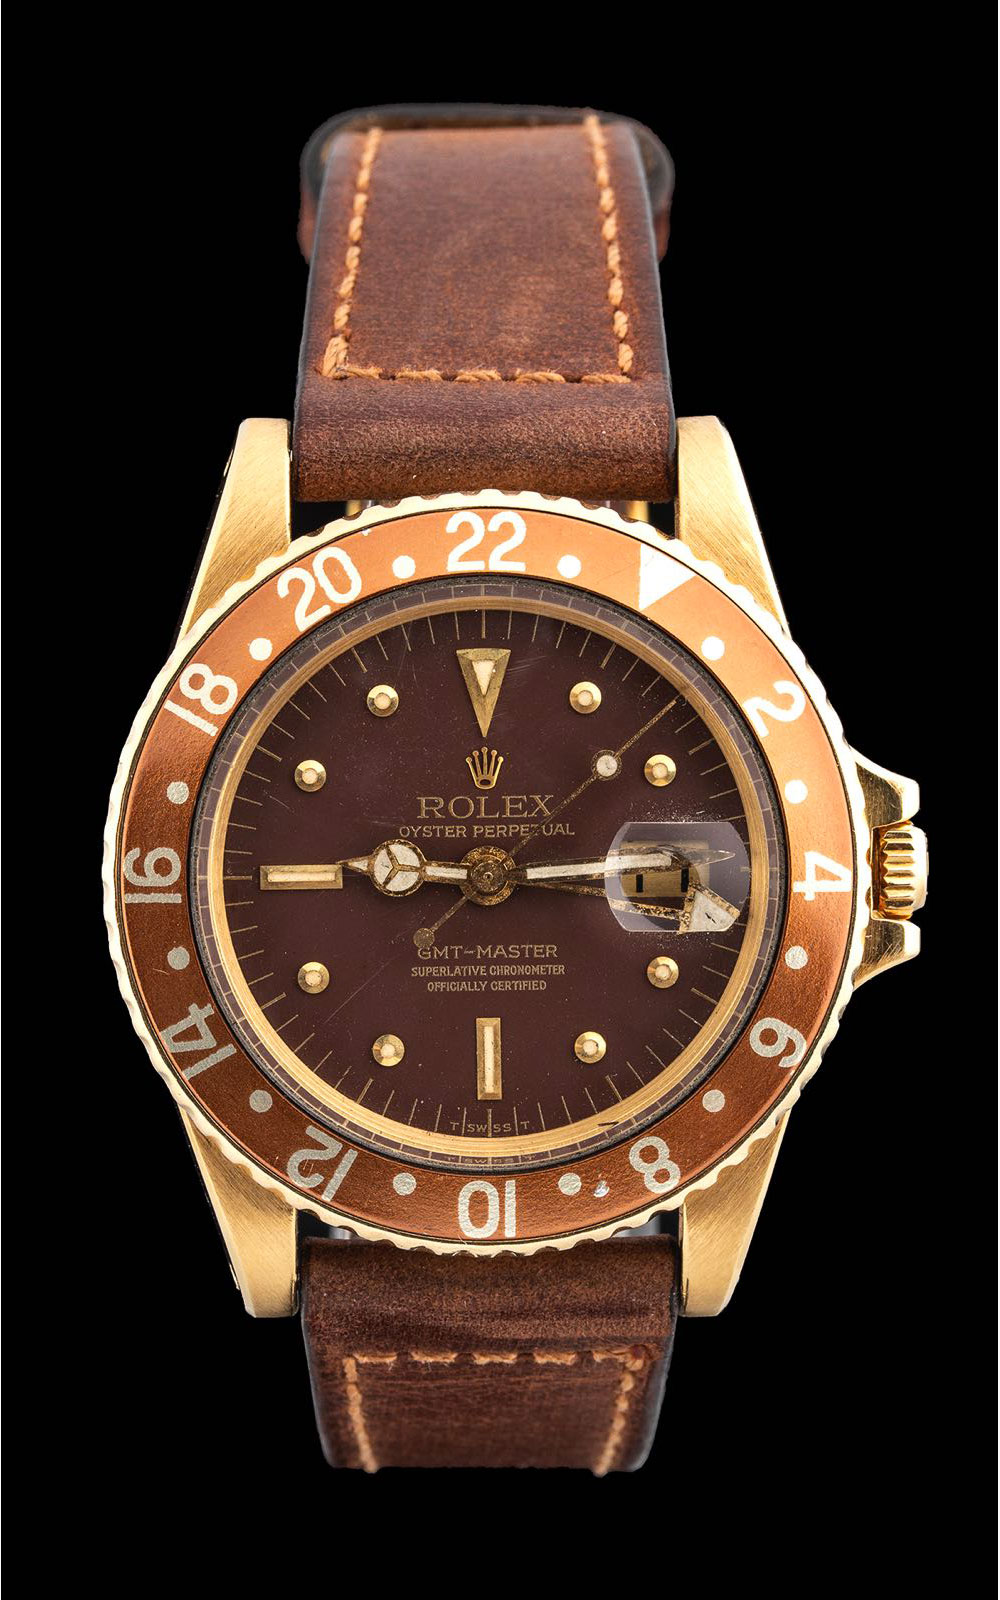 Rolex GMT-Master ref 1675 yellow gold 1975